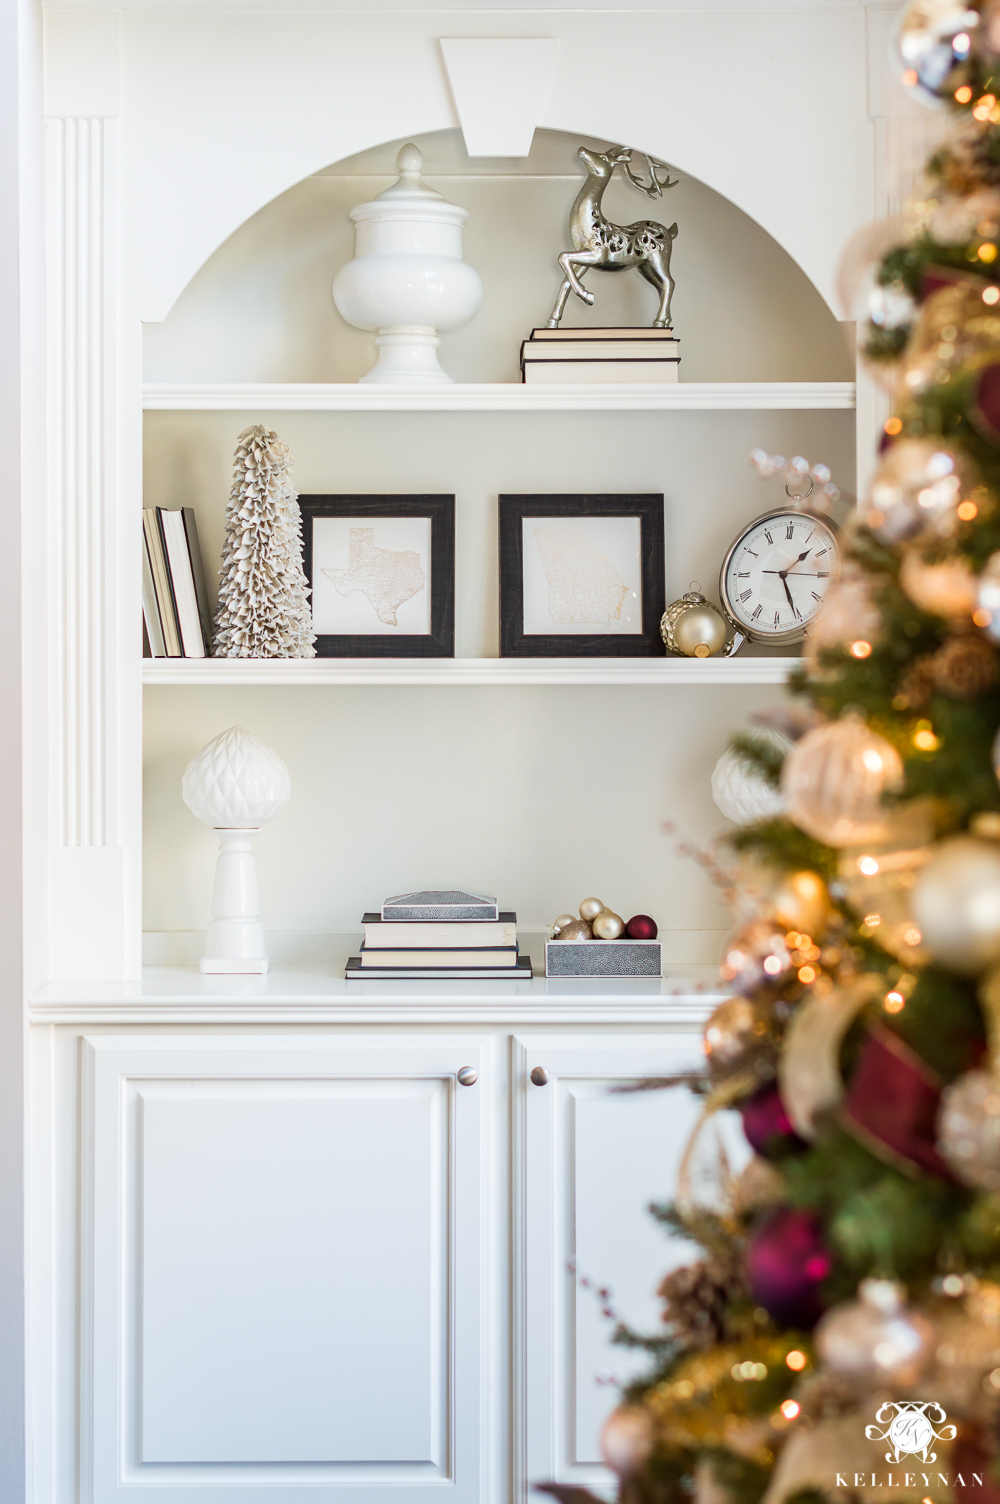 How to style shelves with Christmas decor